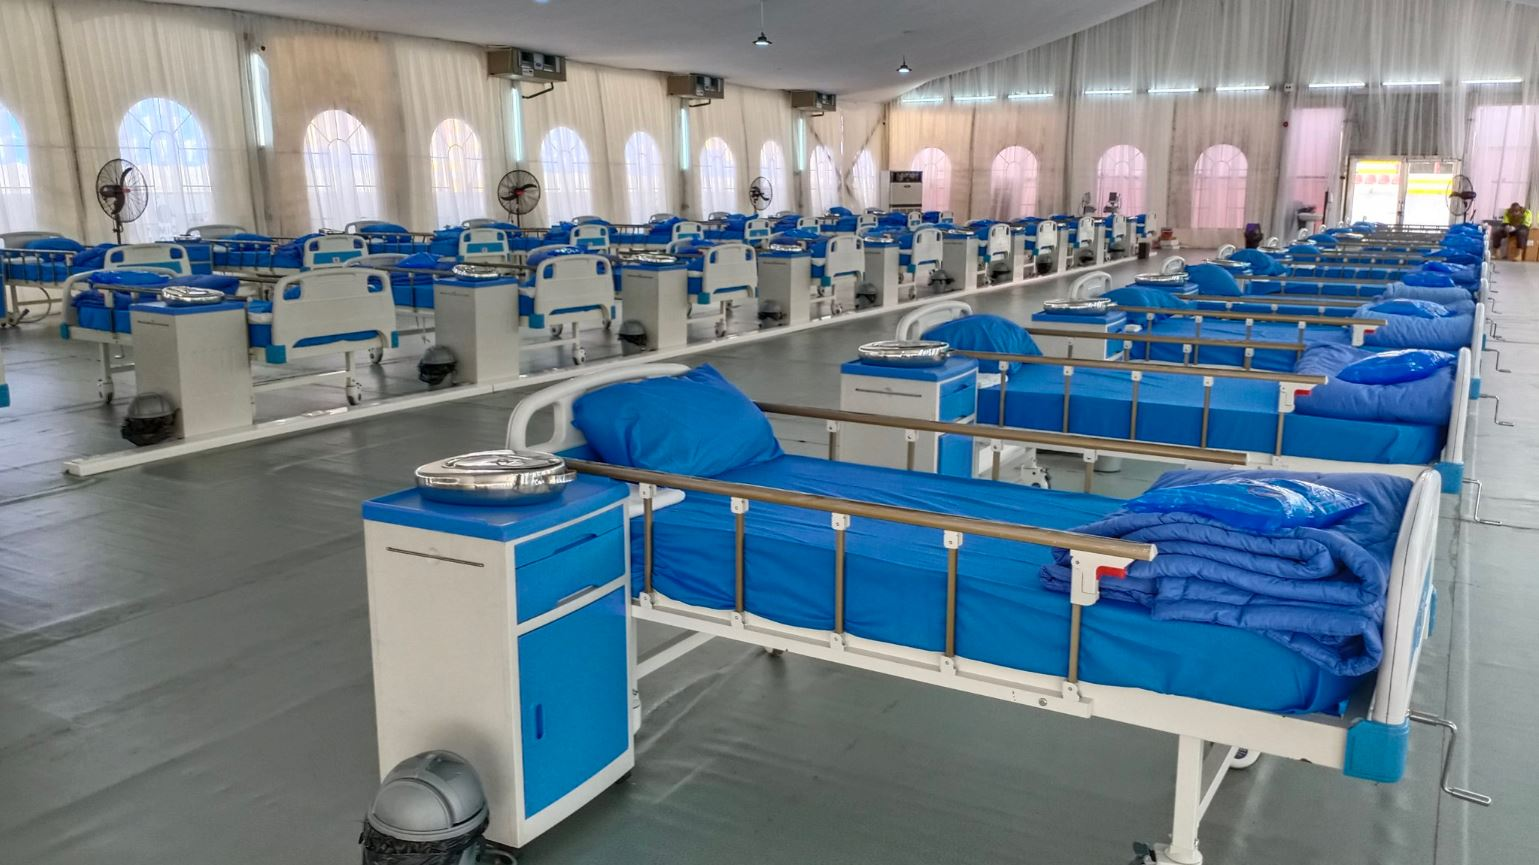 Many COVID-19 patients not in isolation centres due to shortage of bed space - NCDC - Businessday NG